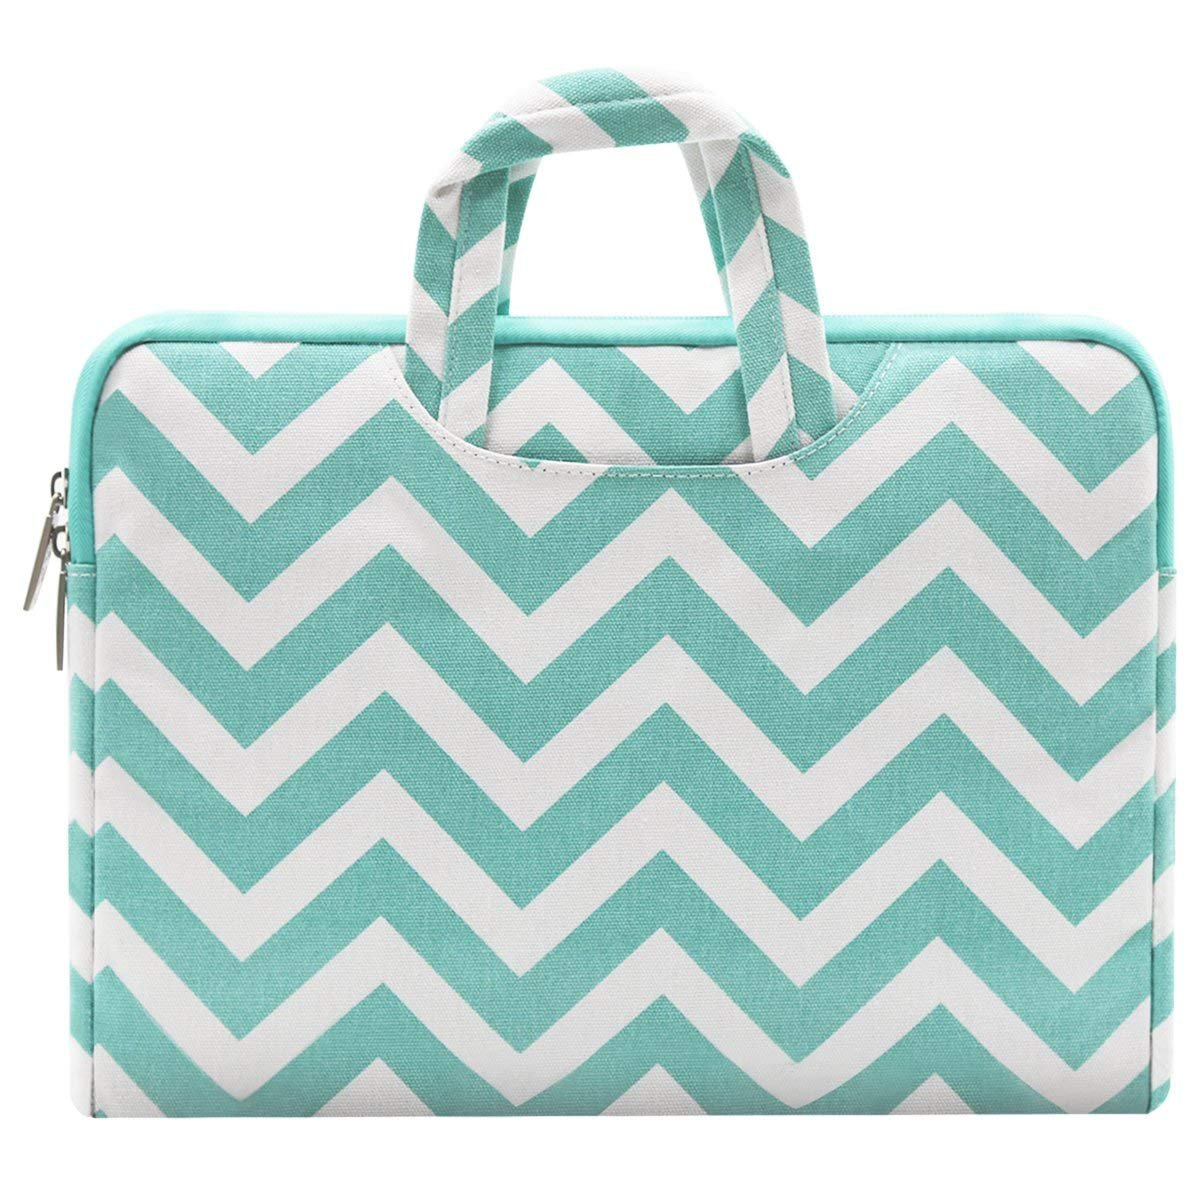 MOSISO Laptop Briefcase Handbag Compatible 11 11.6 Inch MacBook Air Ultrabook Netbook Tablet Chevron Style Canvas Fabric Carrying Sleeve Case Cover Bag Hot Blue